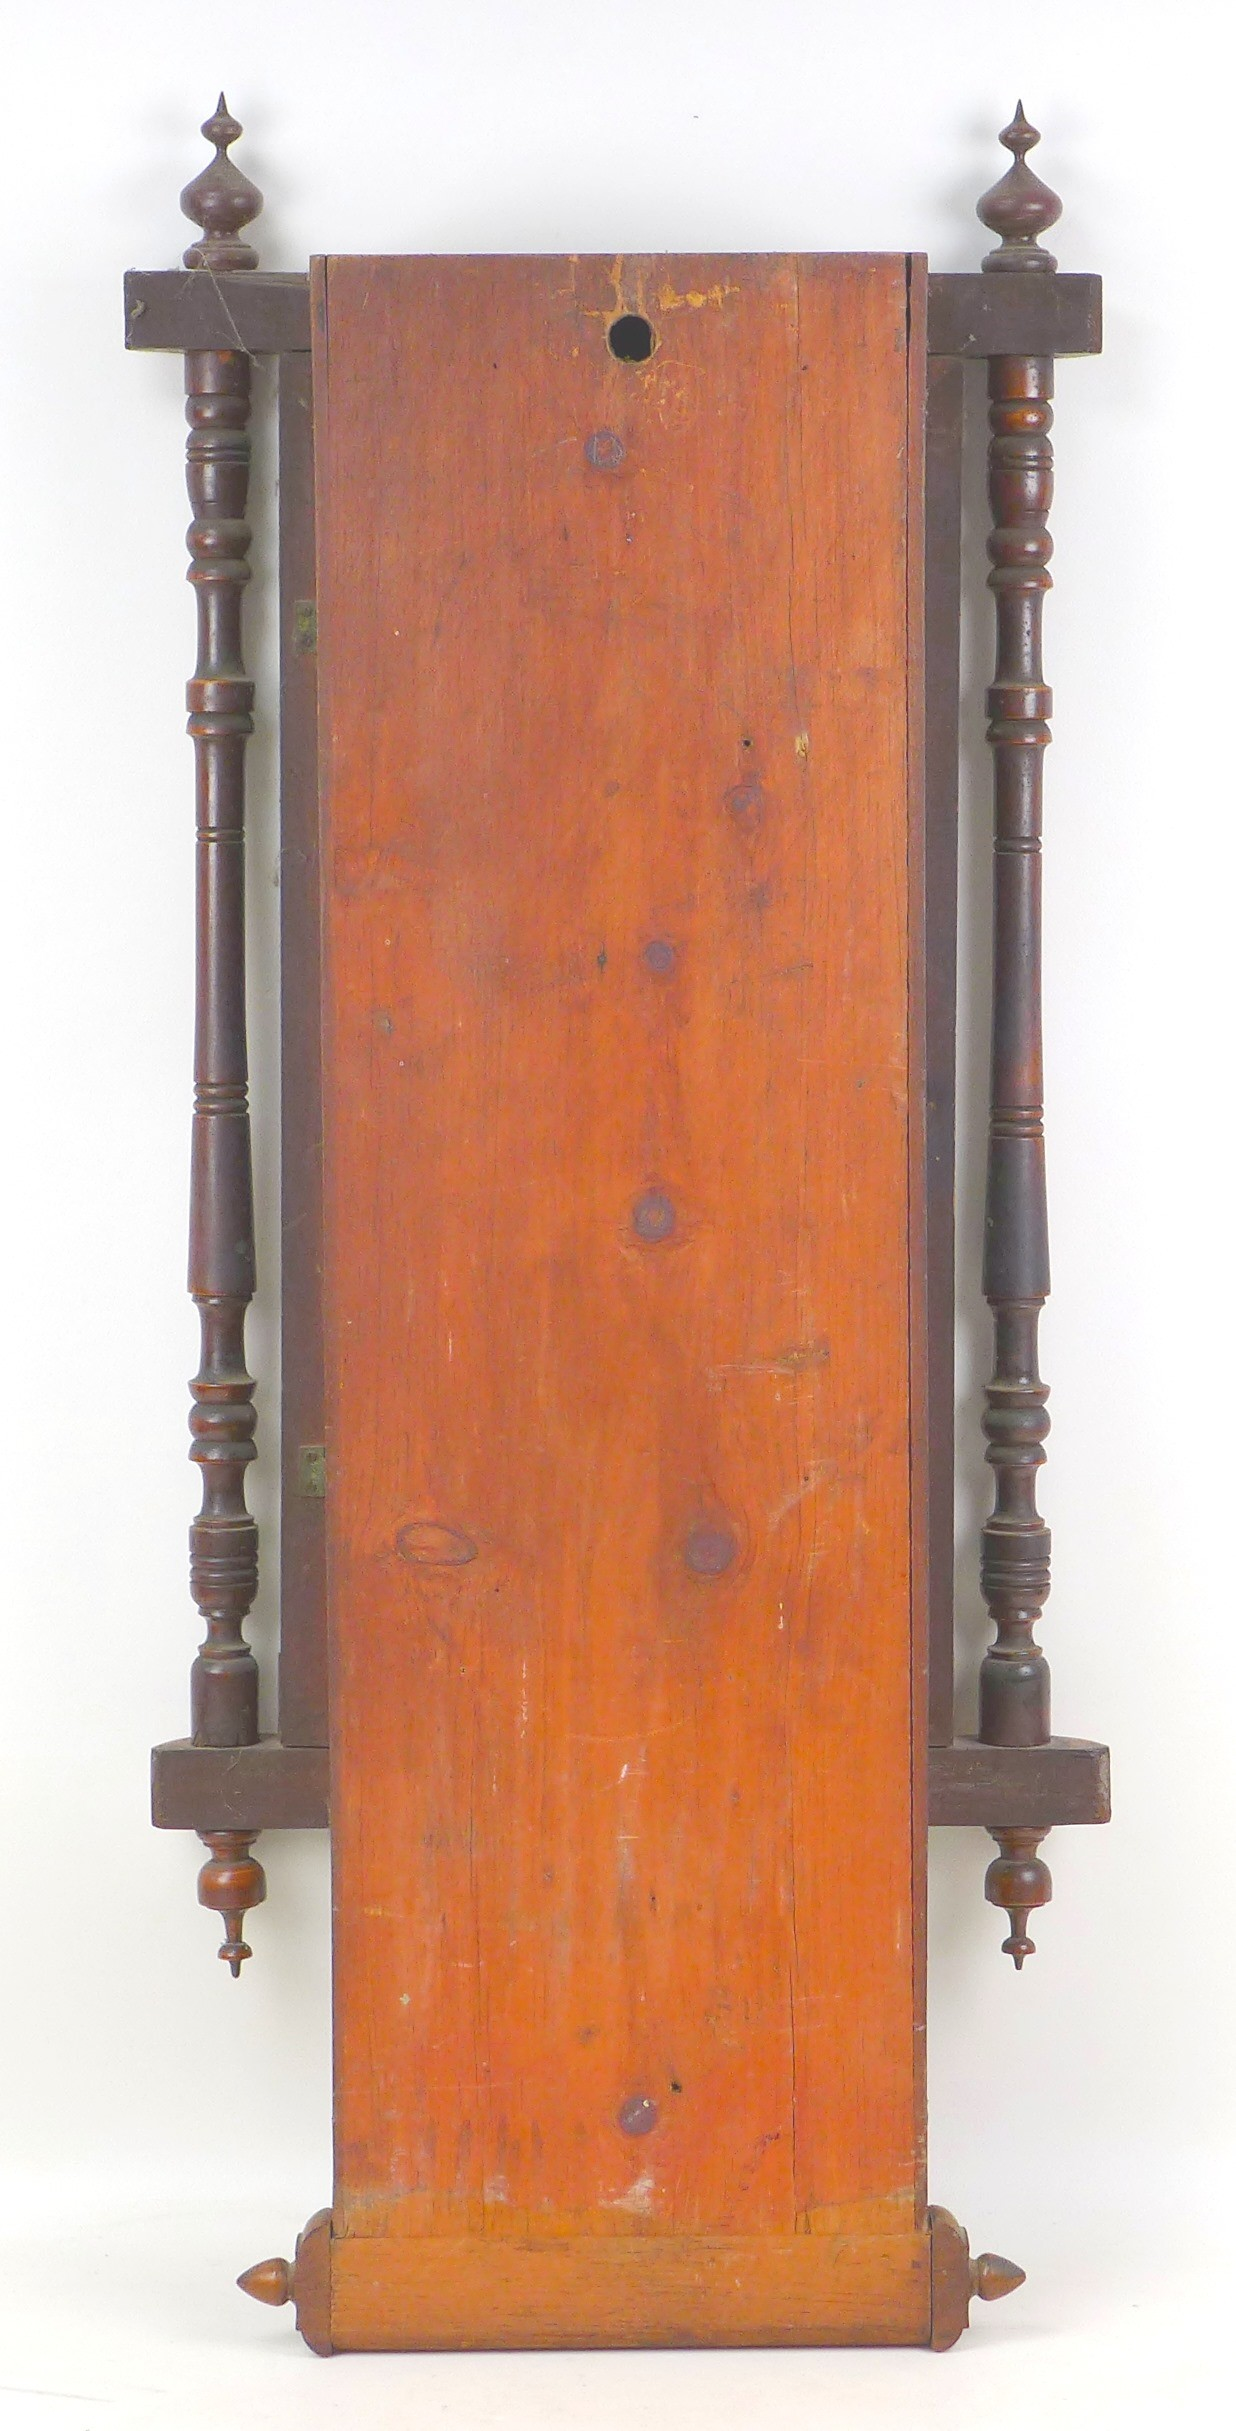 An early 20th century Vienna regulator wall clock with Tunbridge ware inlaid mahogany case, a - Image 4 of 5